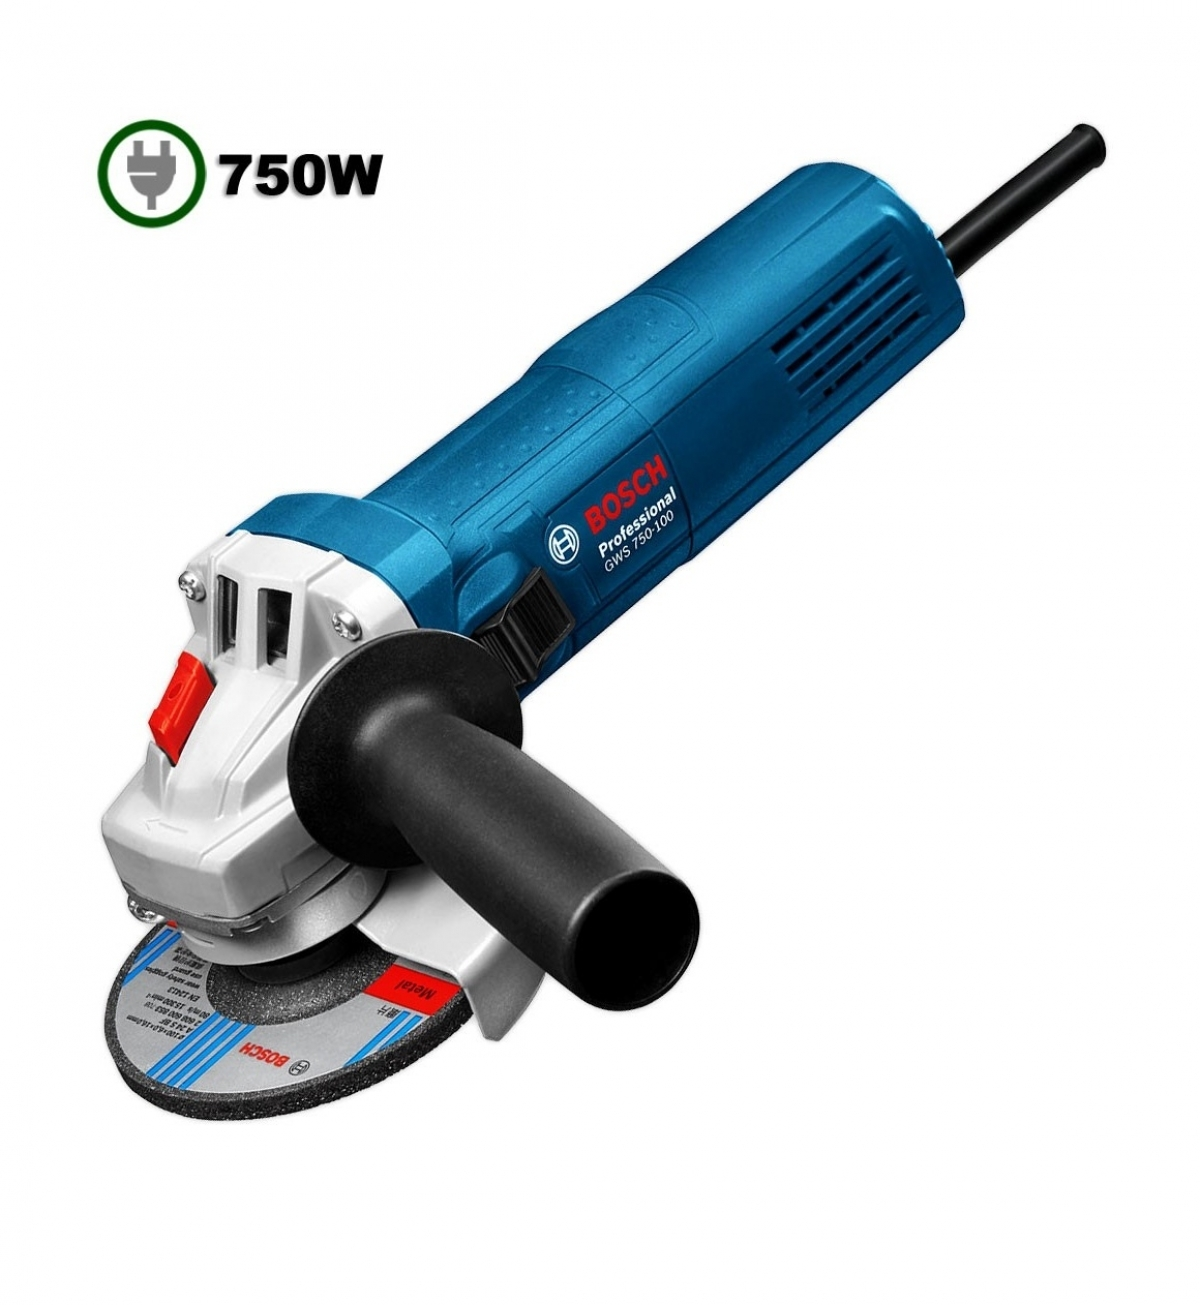 bosch gws 750w 4 angle grinder my power tools. Black Bedroom Furniture Sets. Home Design Ideas